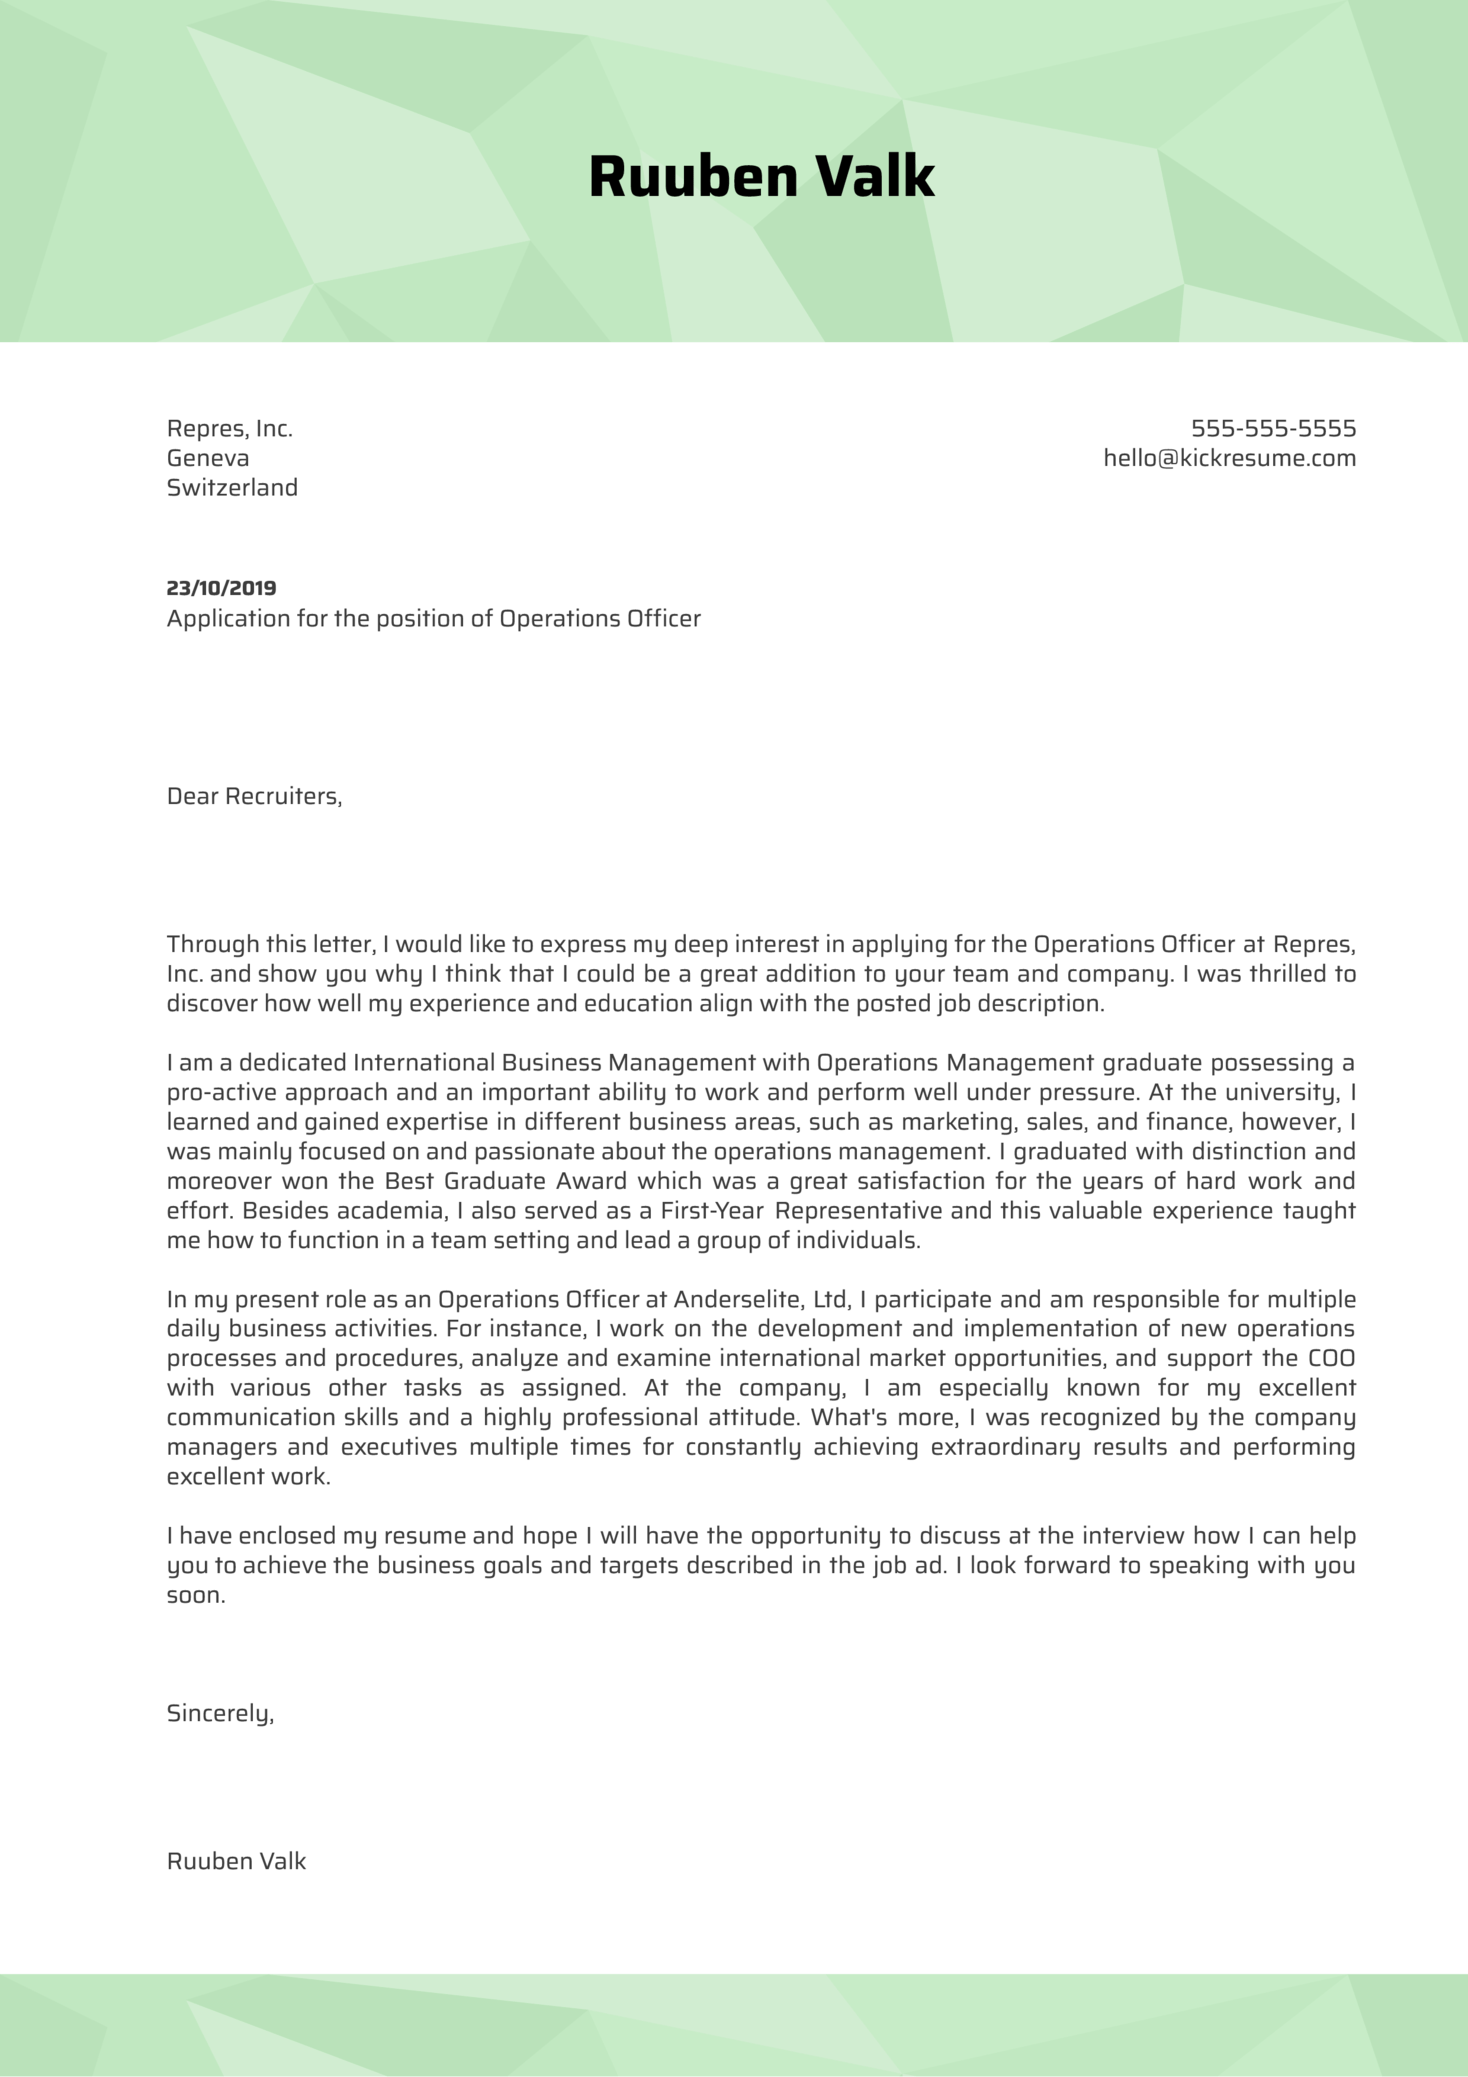 Operations Officer Cover Letter Example